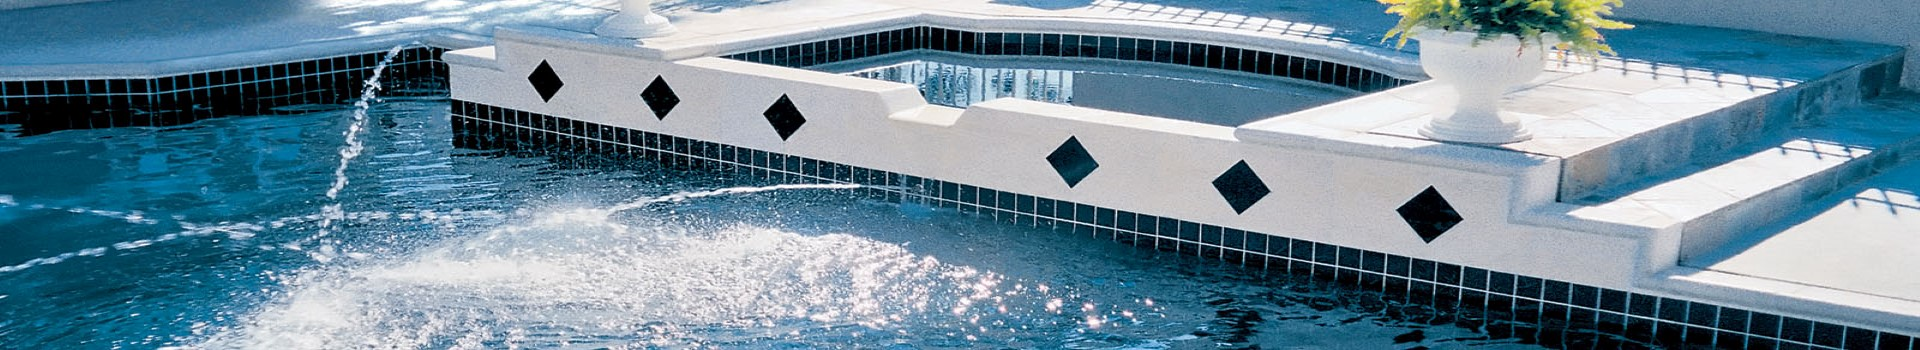 Remodeling-inground-pool-w-spa-and-laminar-jets